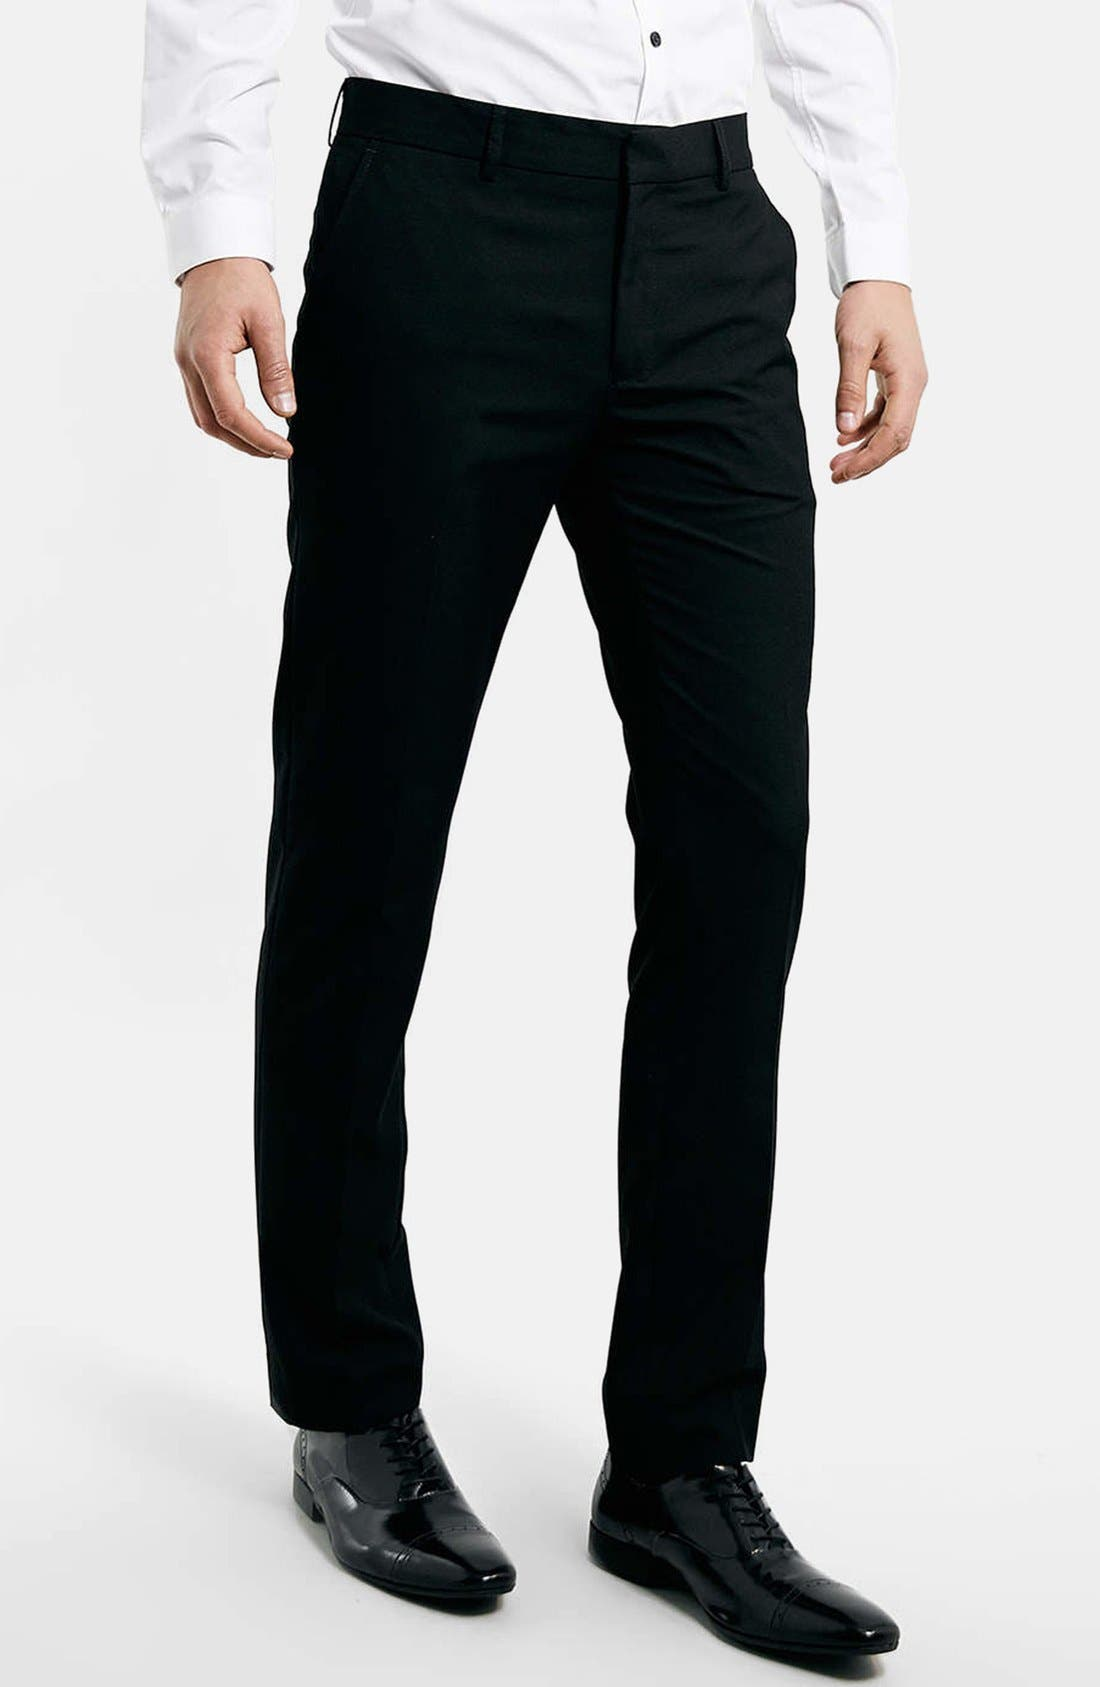 Black Skinny Fit Trousers,                         Main,                         color, 001